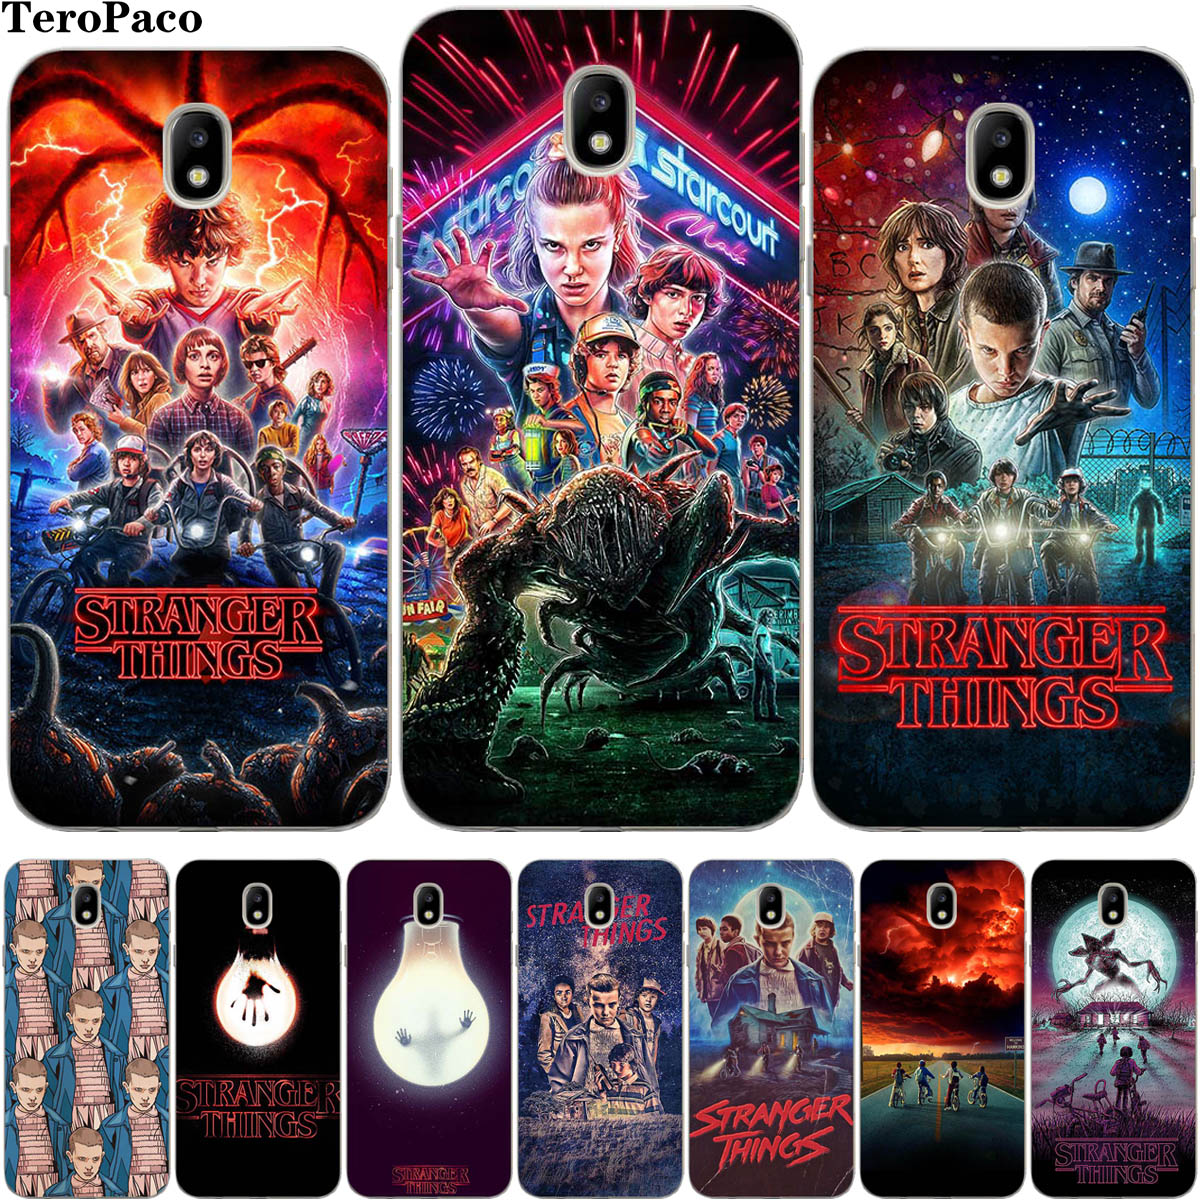 Stranger Things Phone Case For Samsung Galaxy J2 Pro J3 J4 J5 J6 J7 J8 2016 2017 EU Plus 2018 Prime Cover Etui(China)